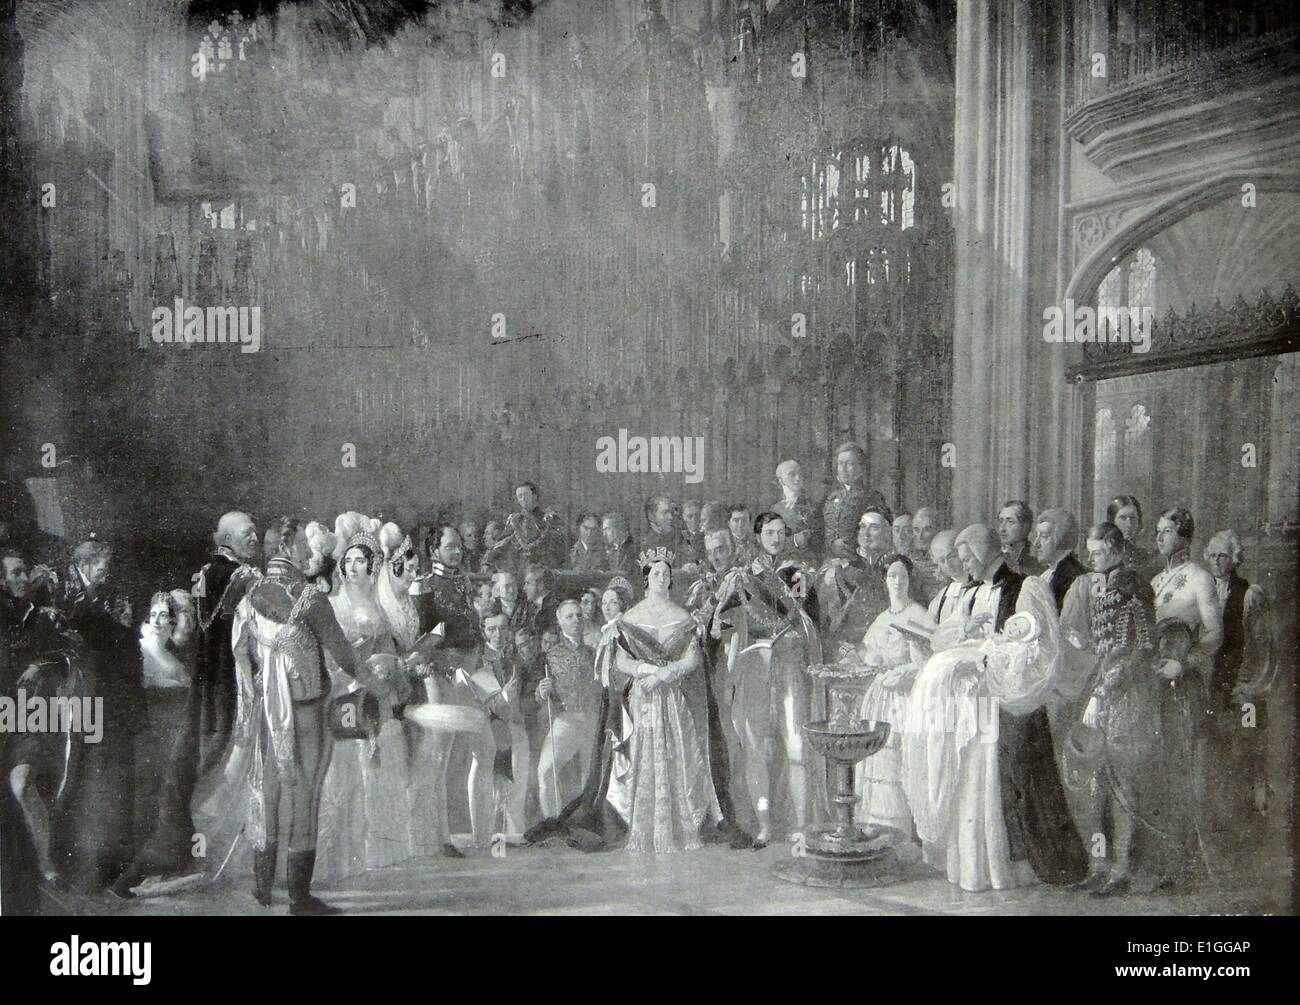 Illustration depicting the christening of the Prince of Wales in St. Georges Chapel, Windsor. Dated 1842 - Stock Image